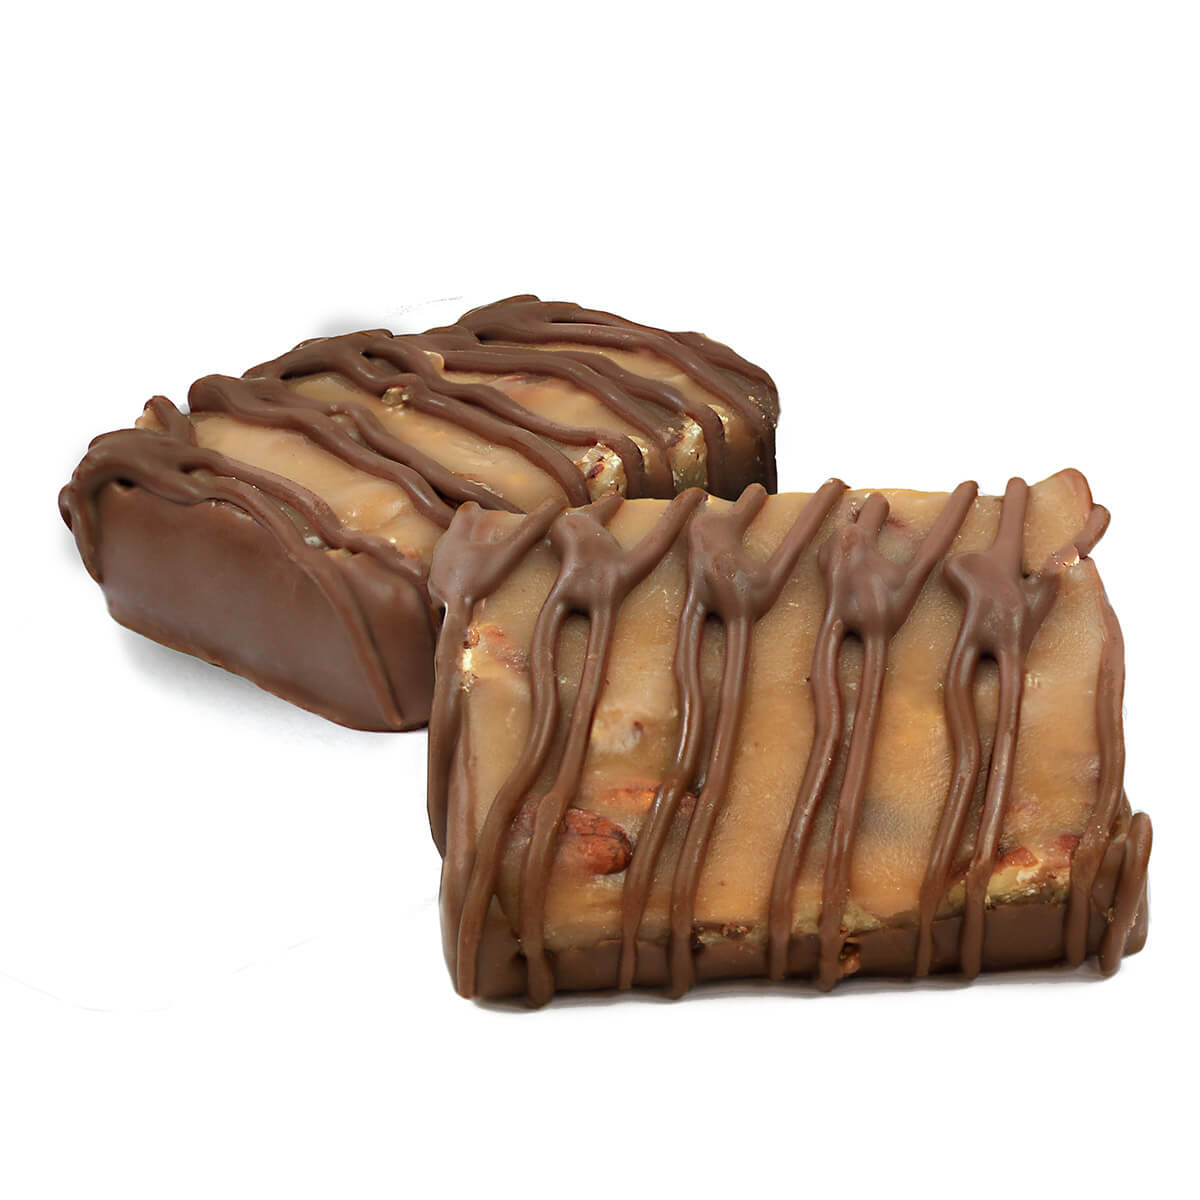 Ethel_M_Chocolates_Pecan_Chocolate_Brittle_Individual_Piece_With_Internal_View